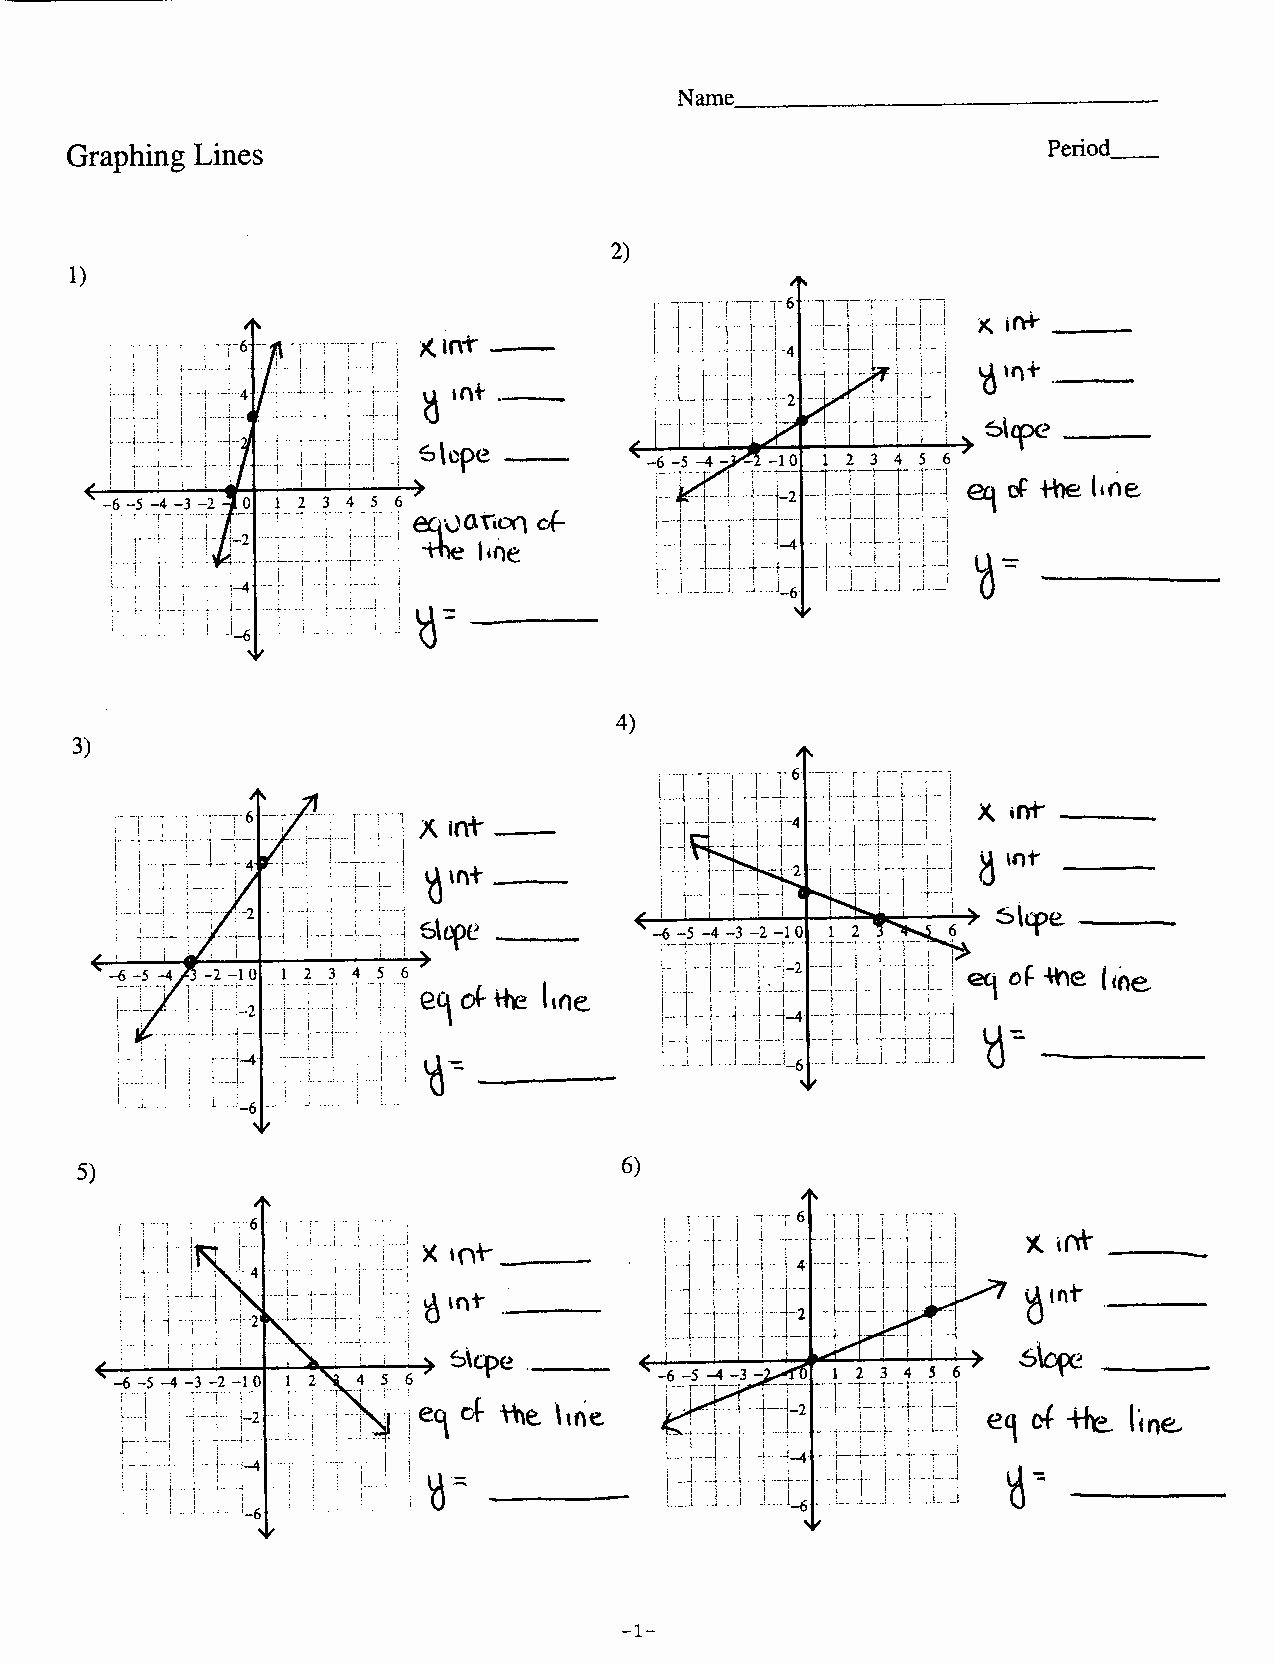 Writing Linear Equations Worksheet Answers Beautiful Writing Linear Equations Worksheet Answers the Best